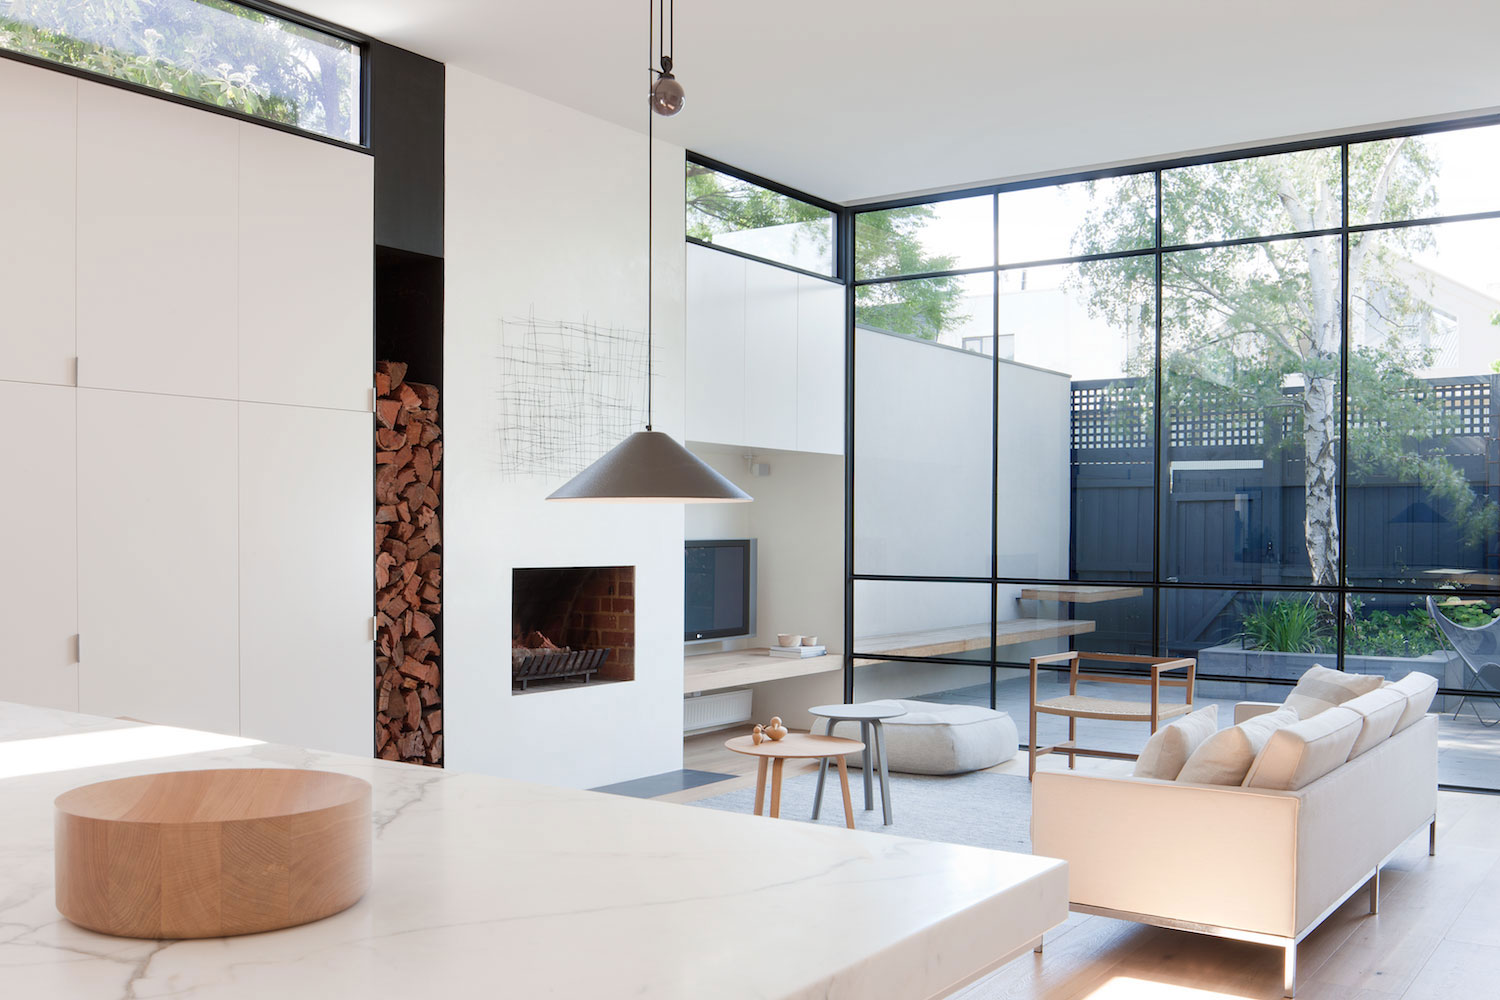 Woonkamer Bruin Wit : Bruin wit interieur thomas gaspersz